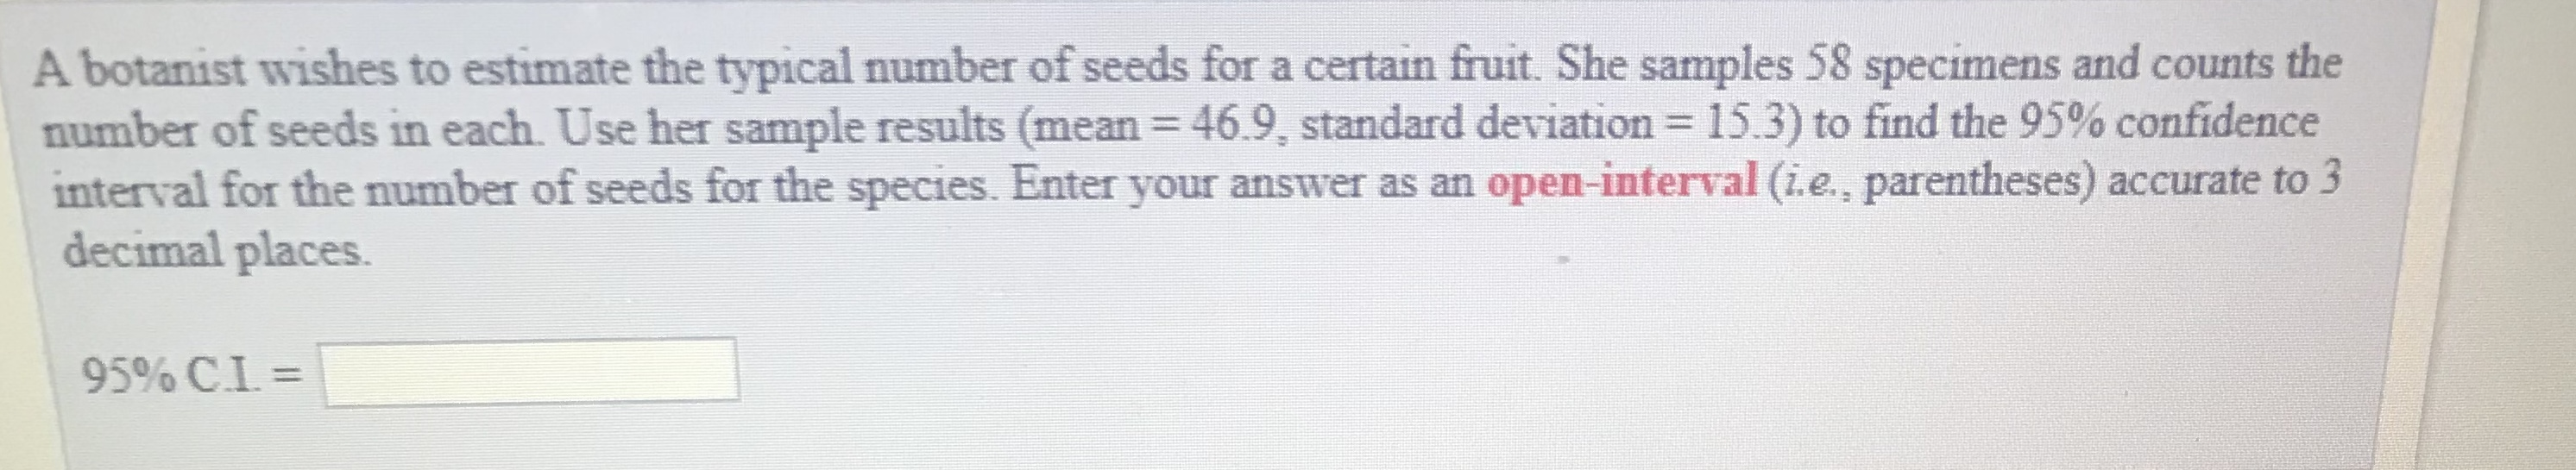 A botanist wishes to estimate the typical number of seeds for a certain fruit. She samples 58 specimens and counts the number of seeds in each. Use her sample results (mean = 469, standard deviation = 15.3) to find the 95% confidence interval for the number of seeds for the species. Enter your answer as an open-interval (ie., parentheses) accurate to 3 decimal places 95% CI ::